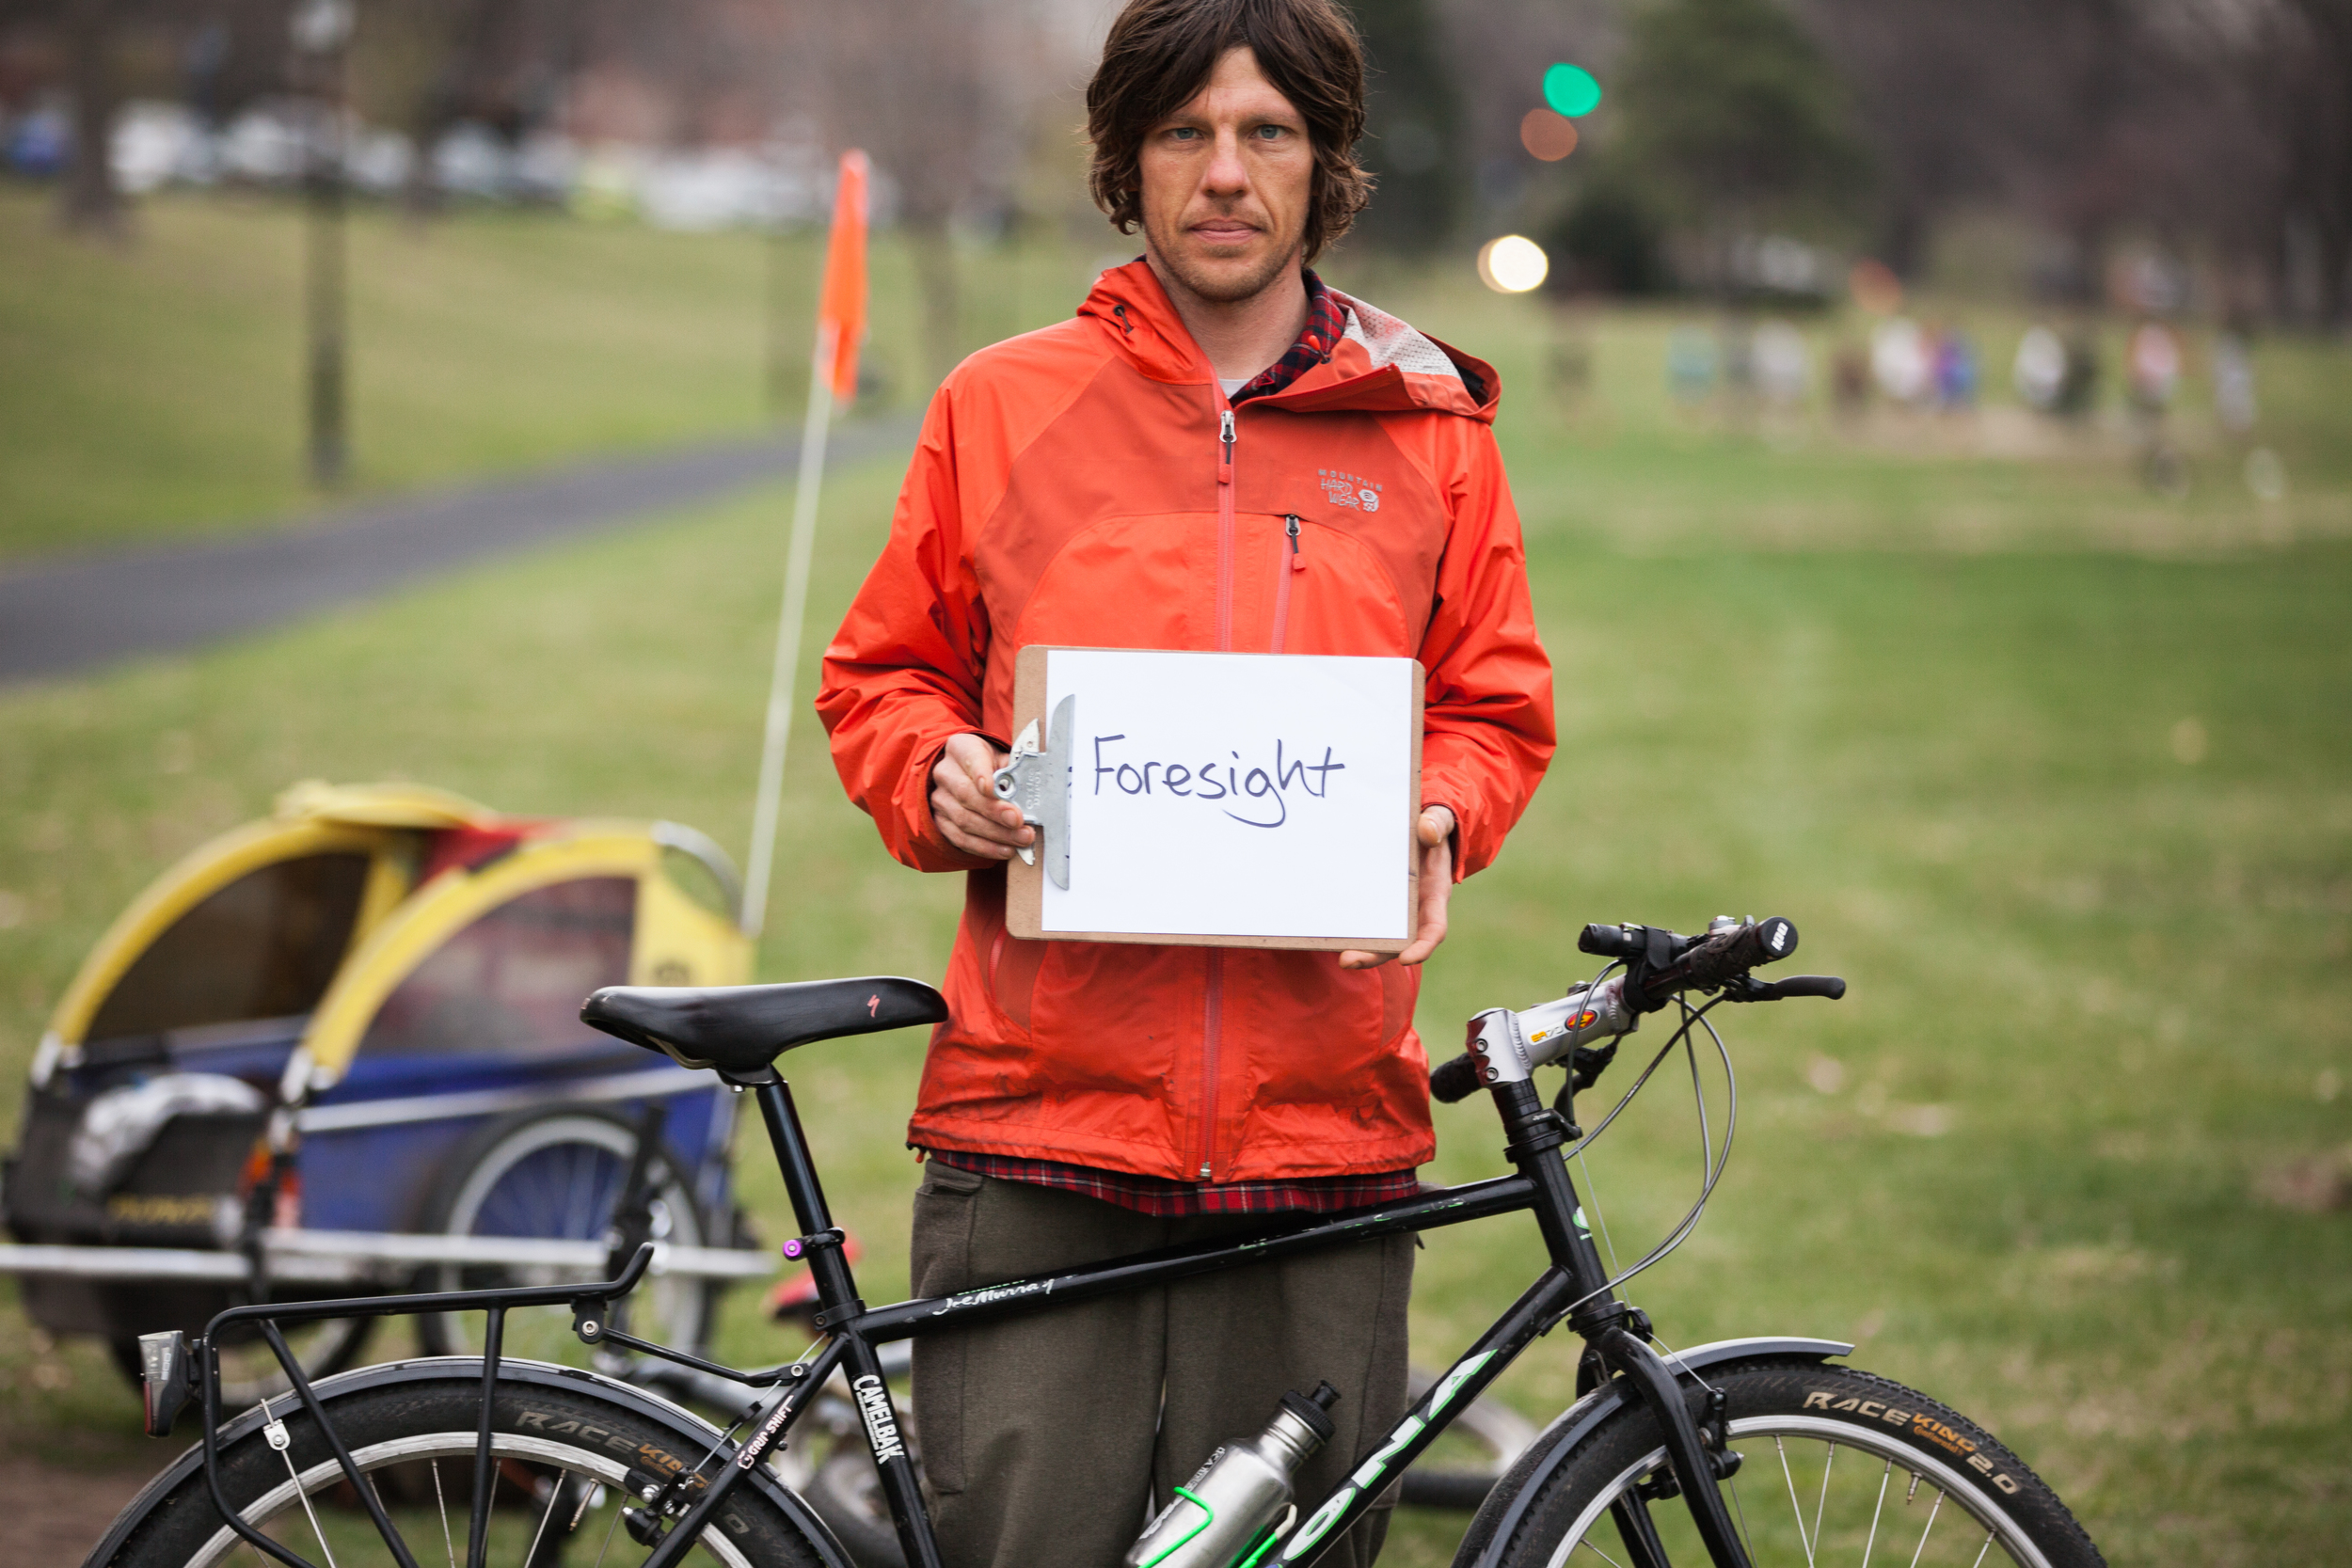 Man holding a sign saying foresight with his bicycle leaning against him.